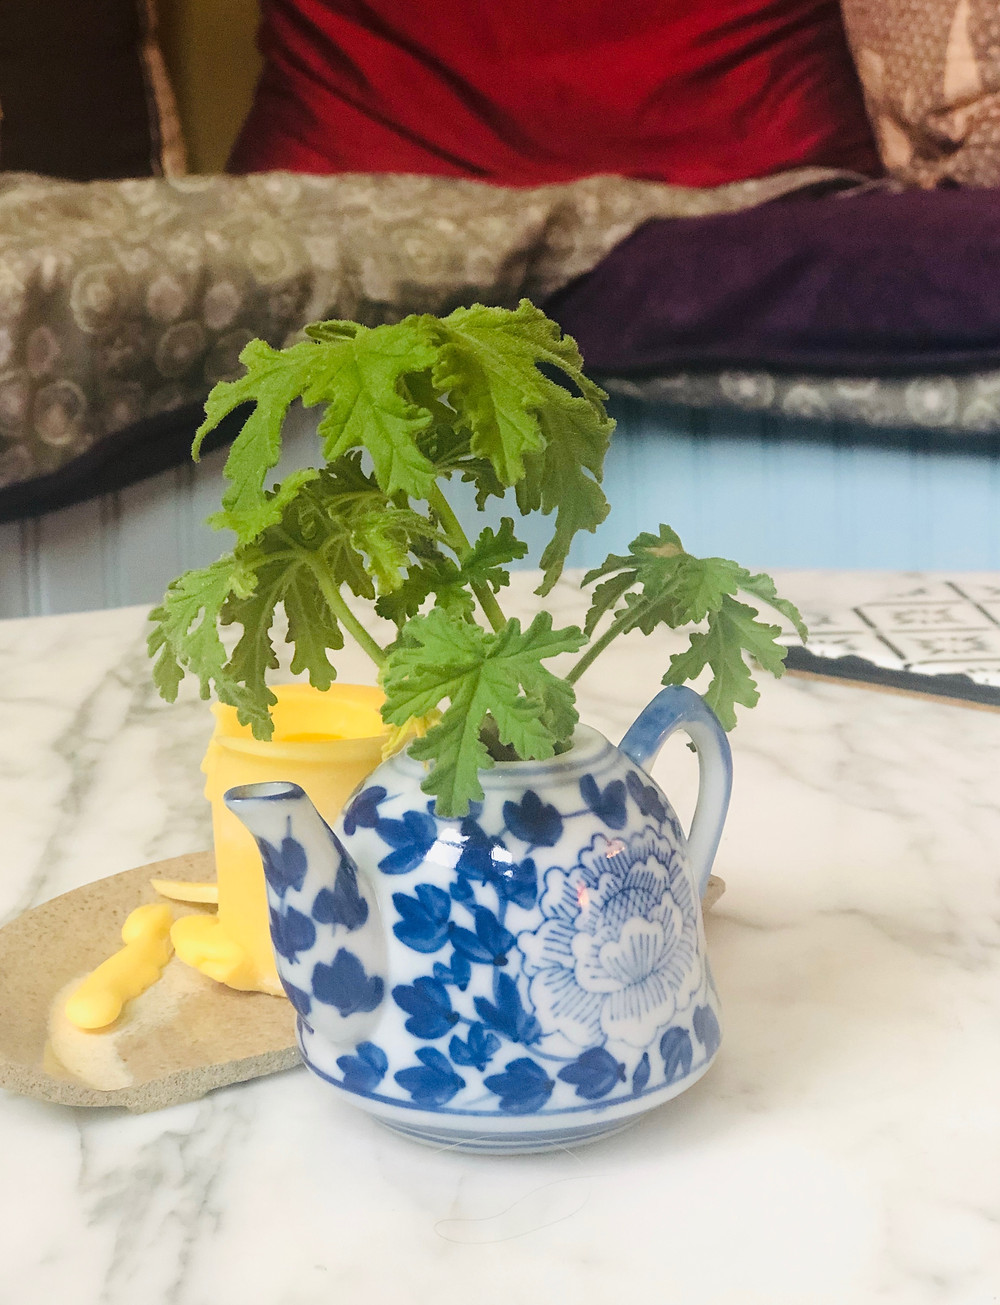 Decorative small tea blue and white tea pot with a small plant growing from it